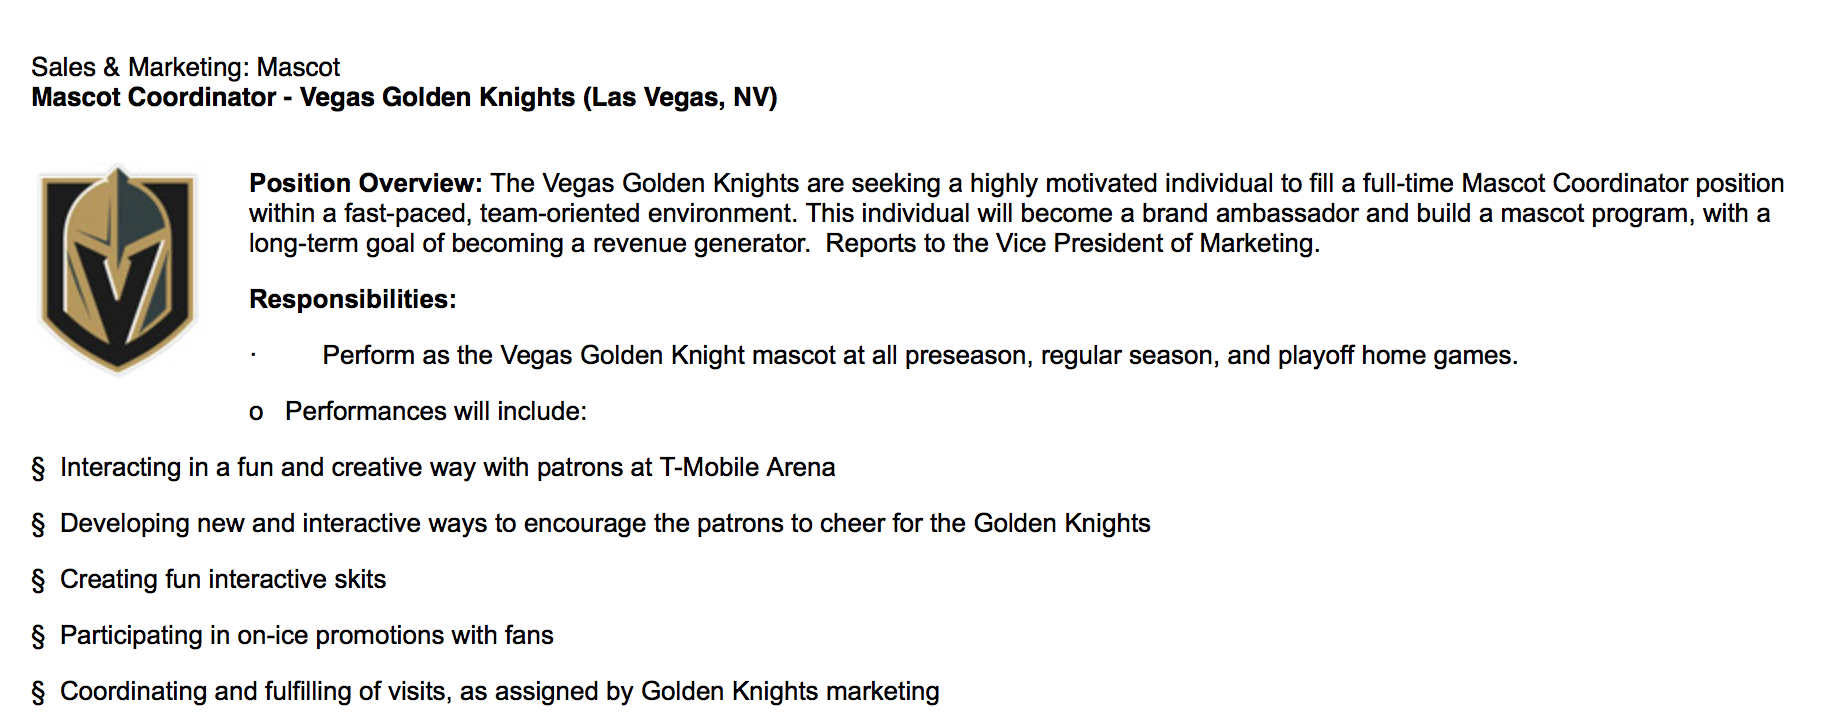 Apply To Be The Golden Knight Sinbin Vegas